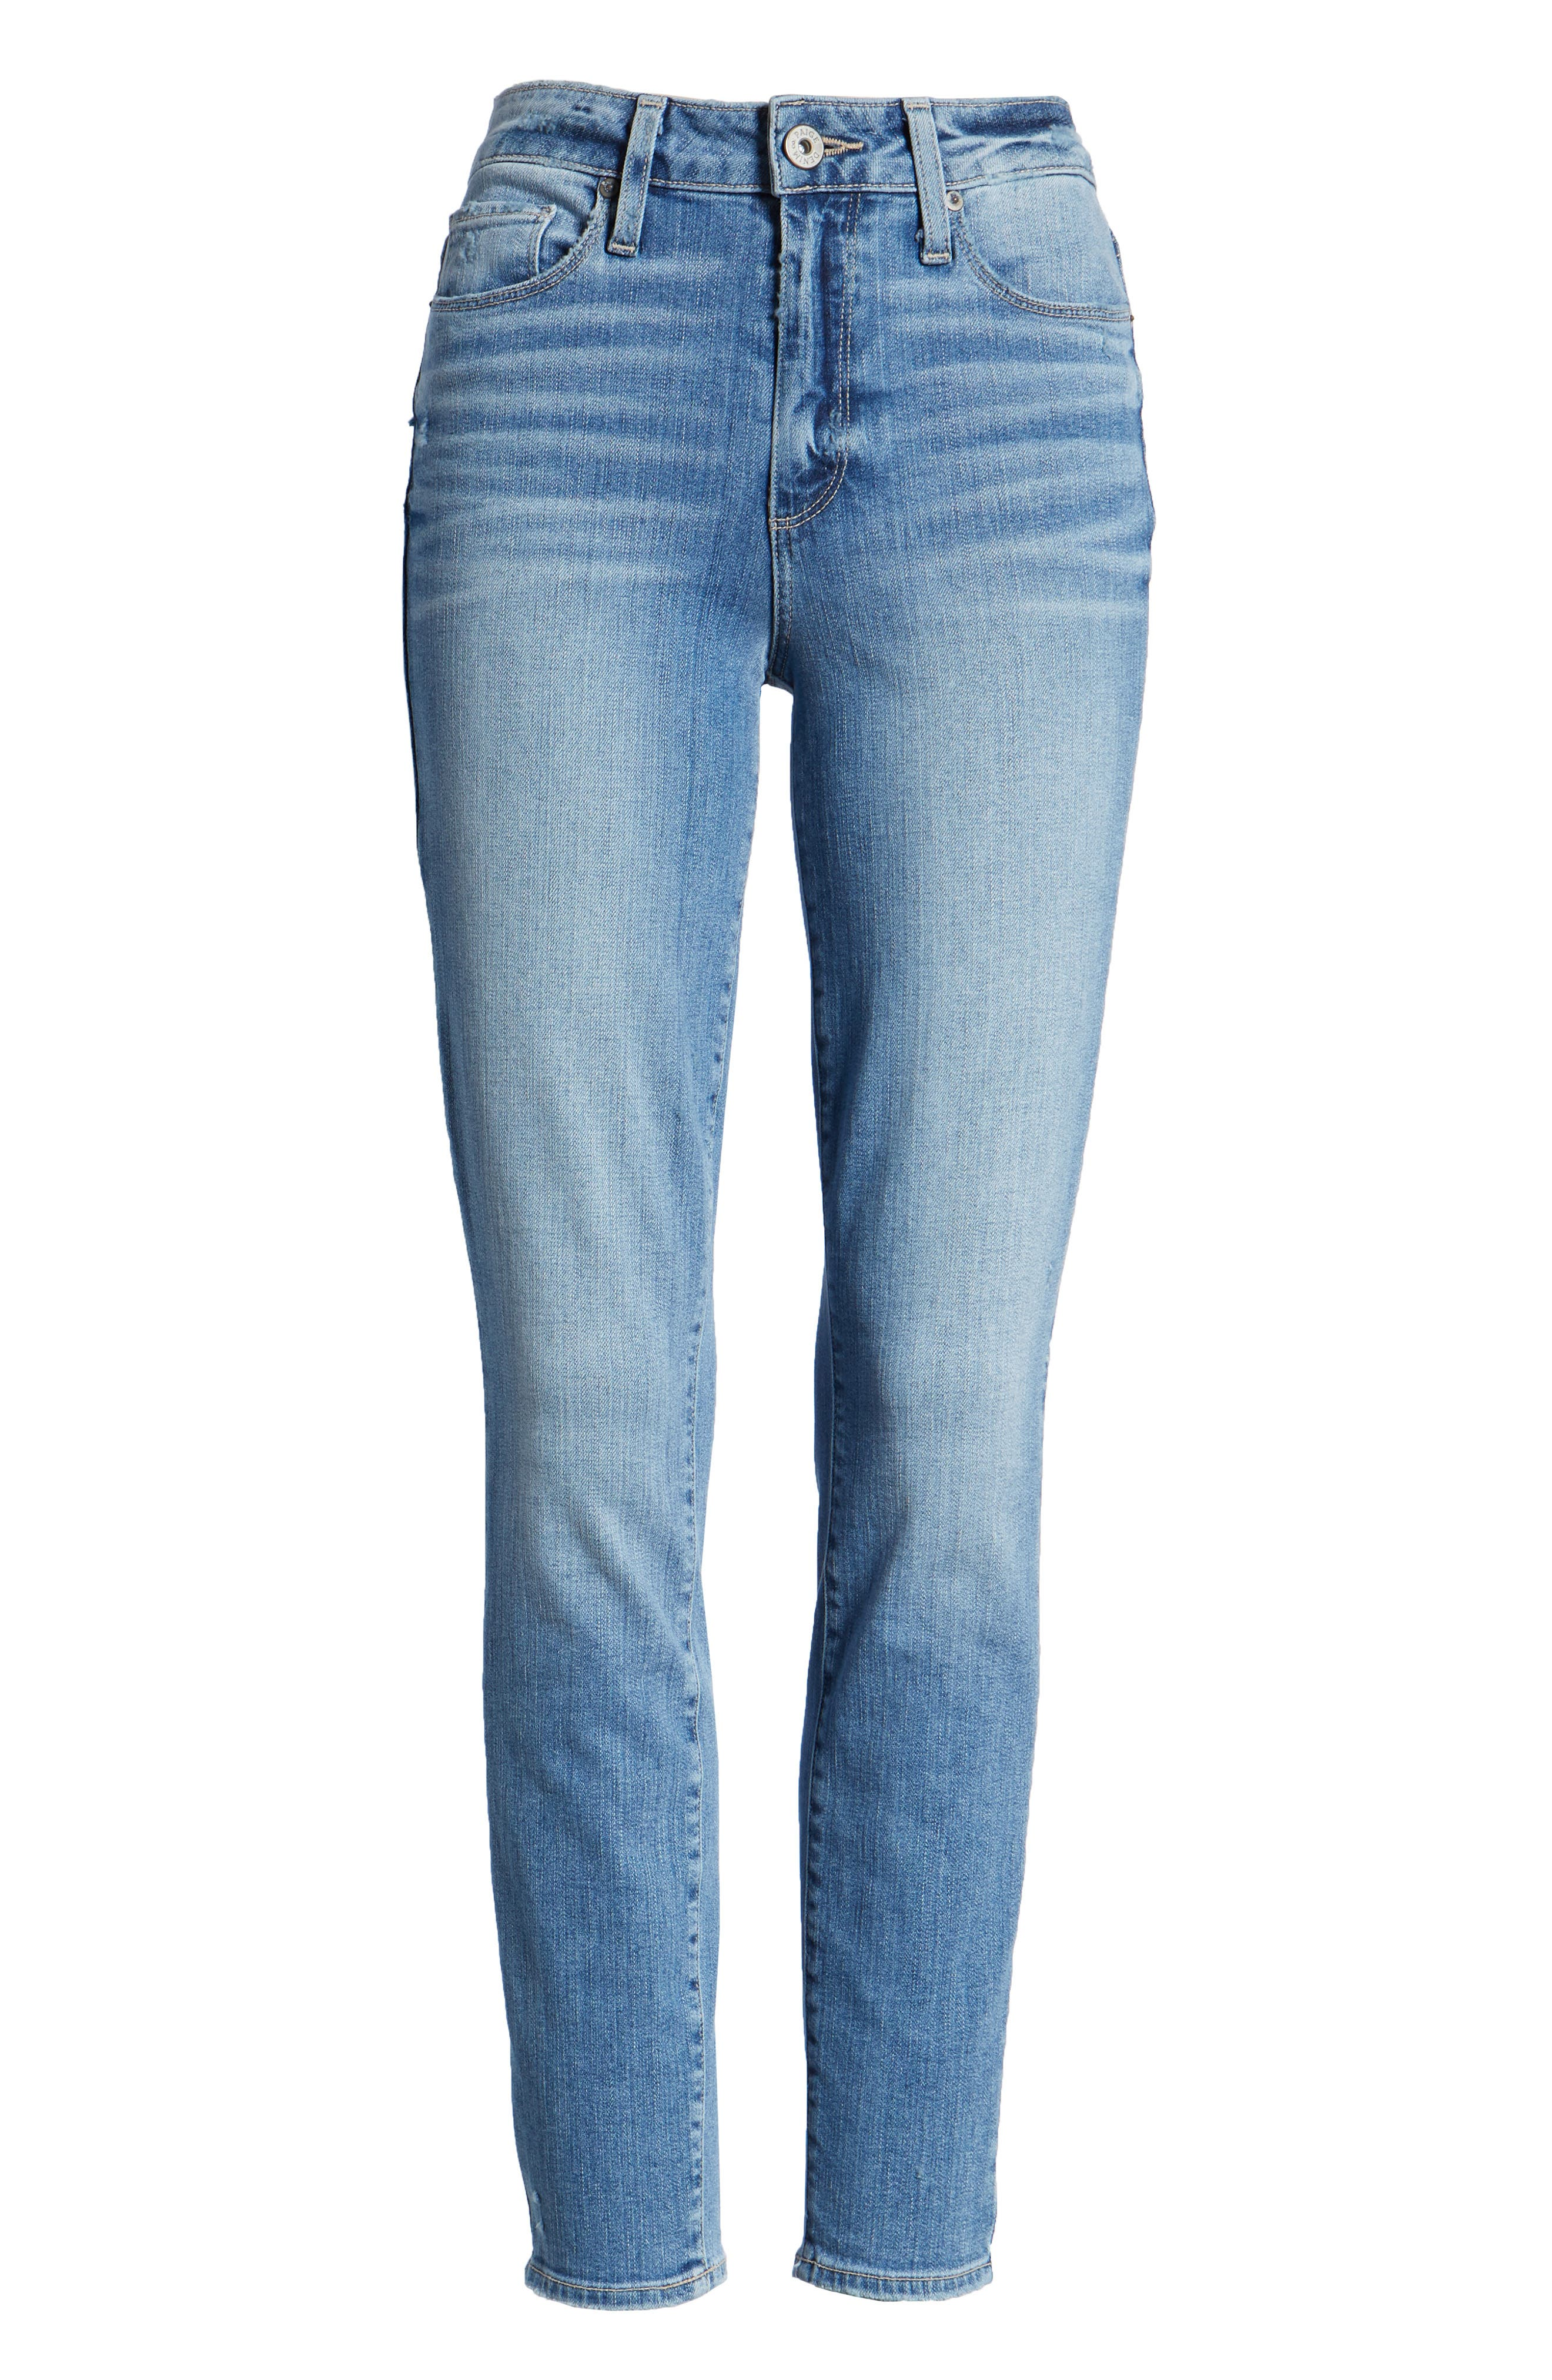 Hoxton Distressed Ankle Jeans,                             Alternate thumbnail 7, color,                             400